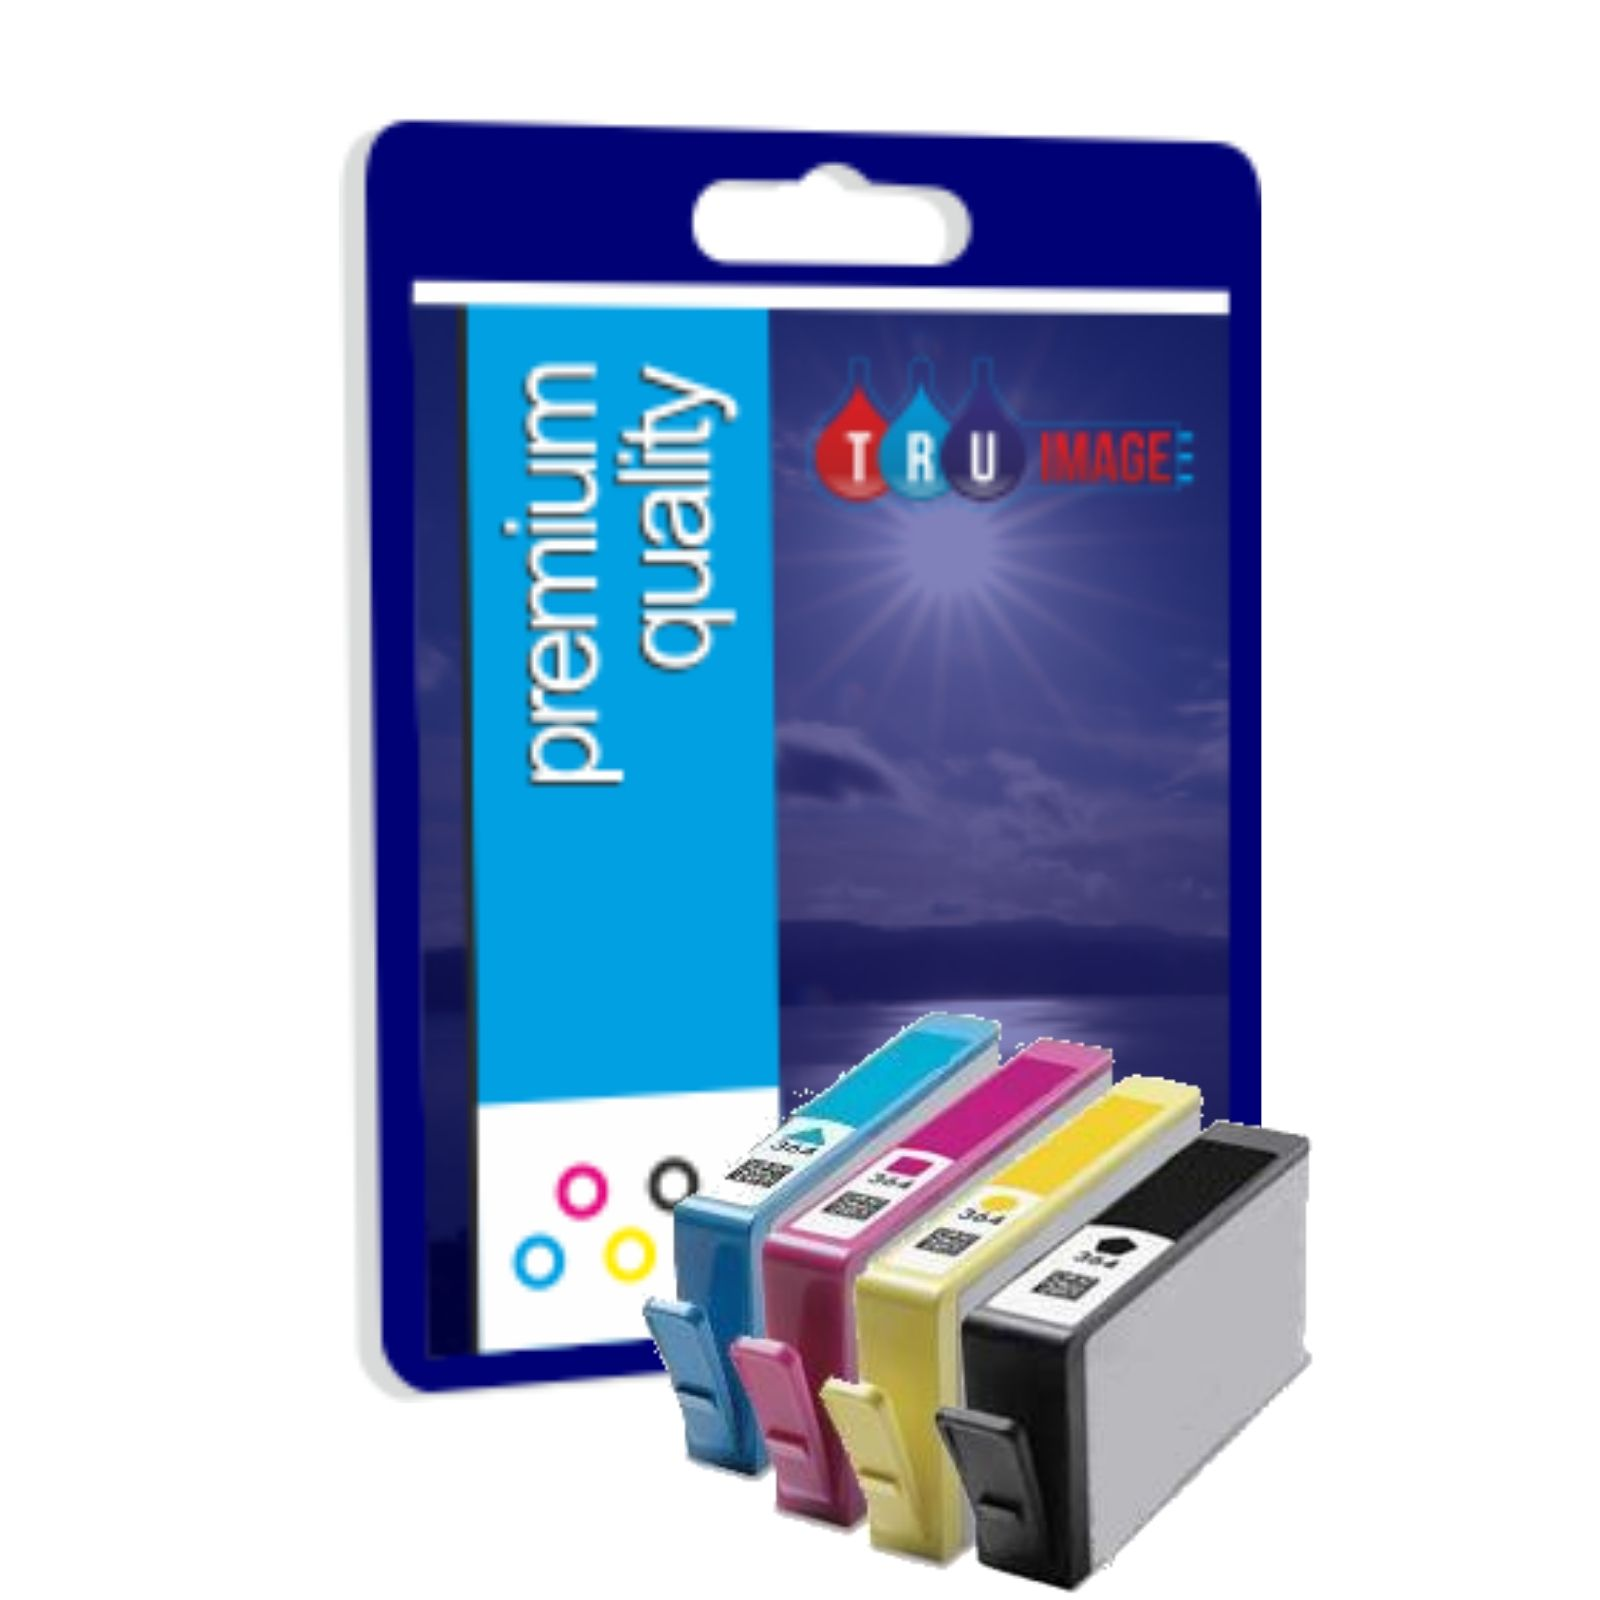 hp photosmart 5520 cartridges buy ink cartridges. Black Bedroom Furniture Sets. Home Design Ideas